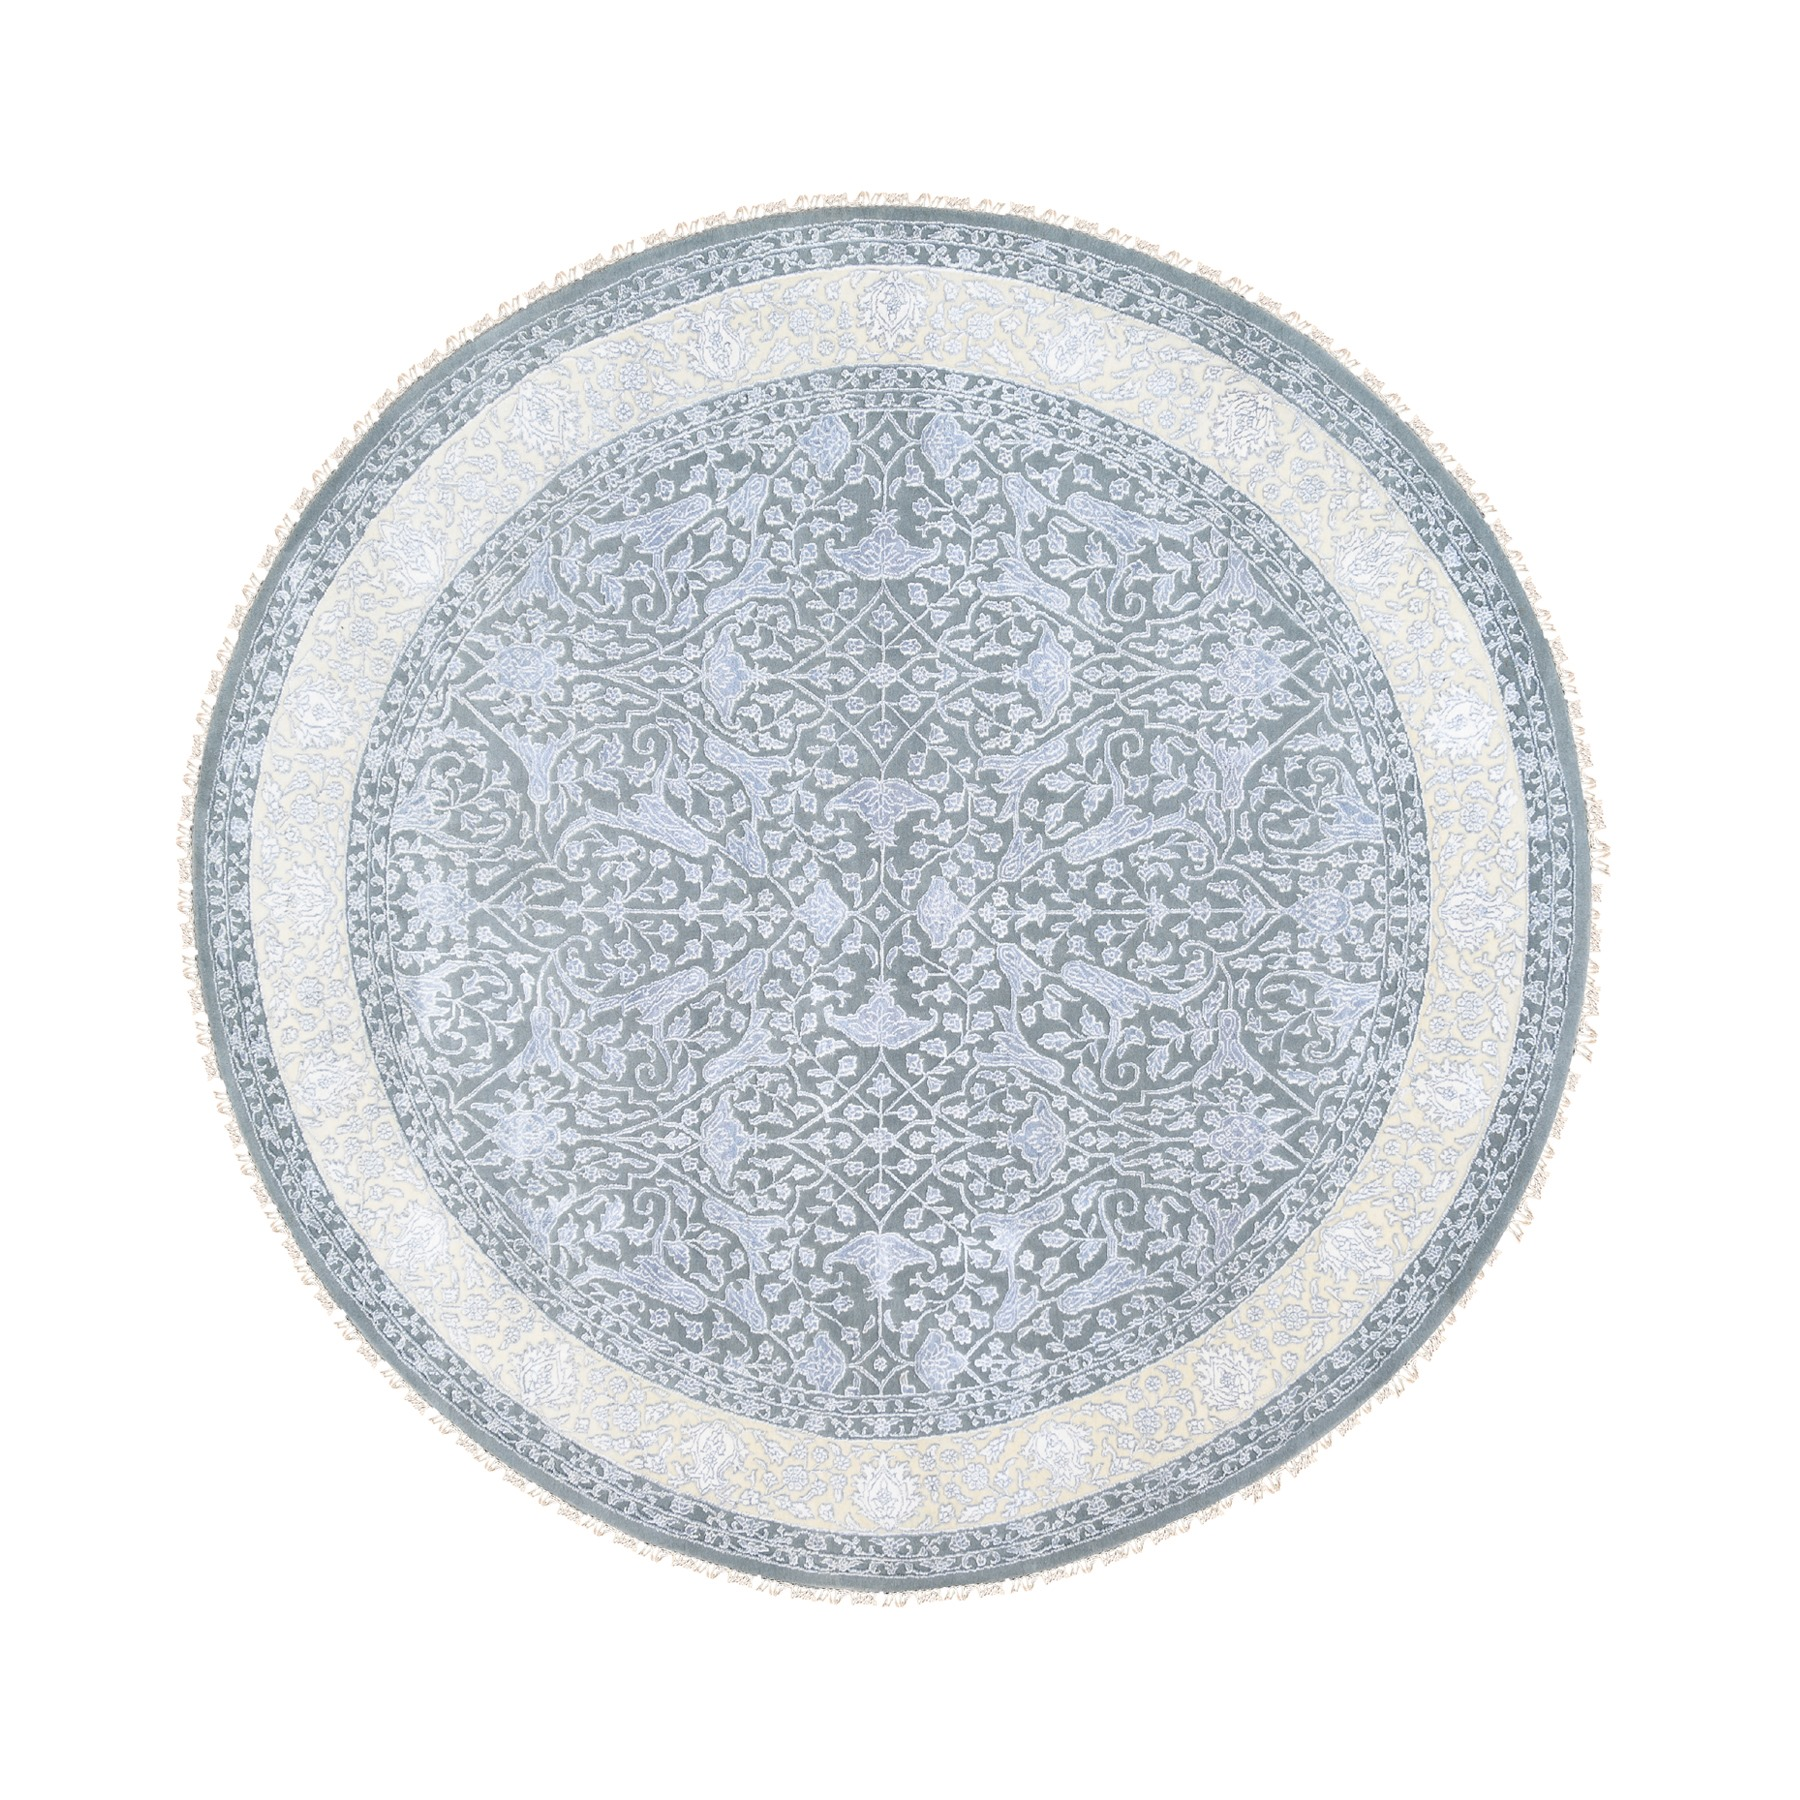 Pirniakan Collection Hand Knotted Grey Rug No: 1124502